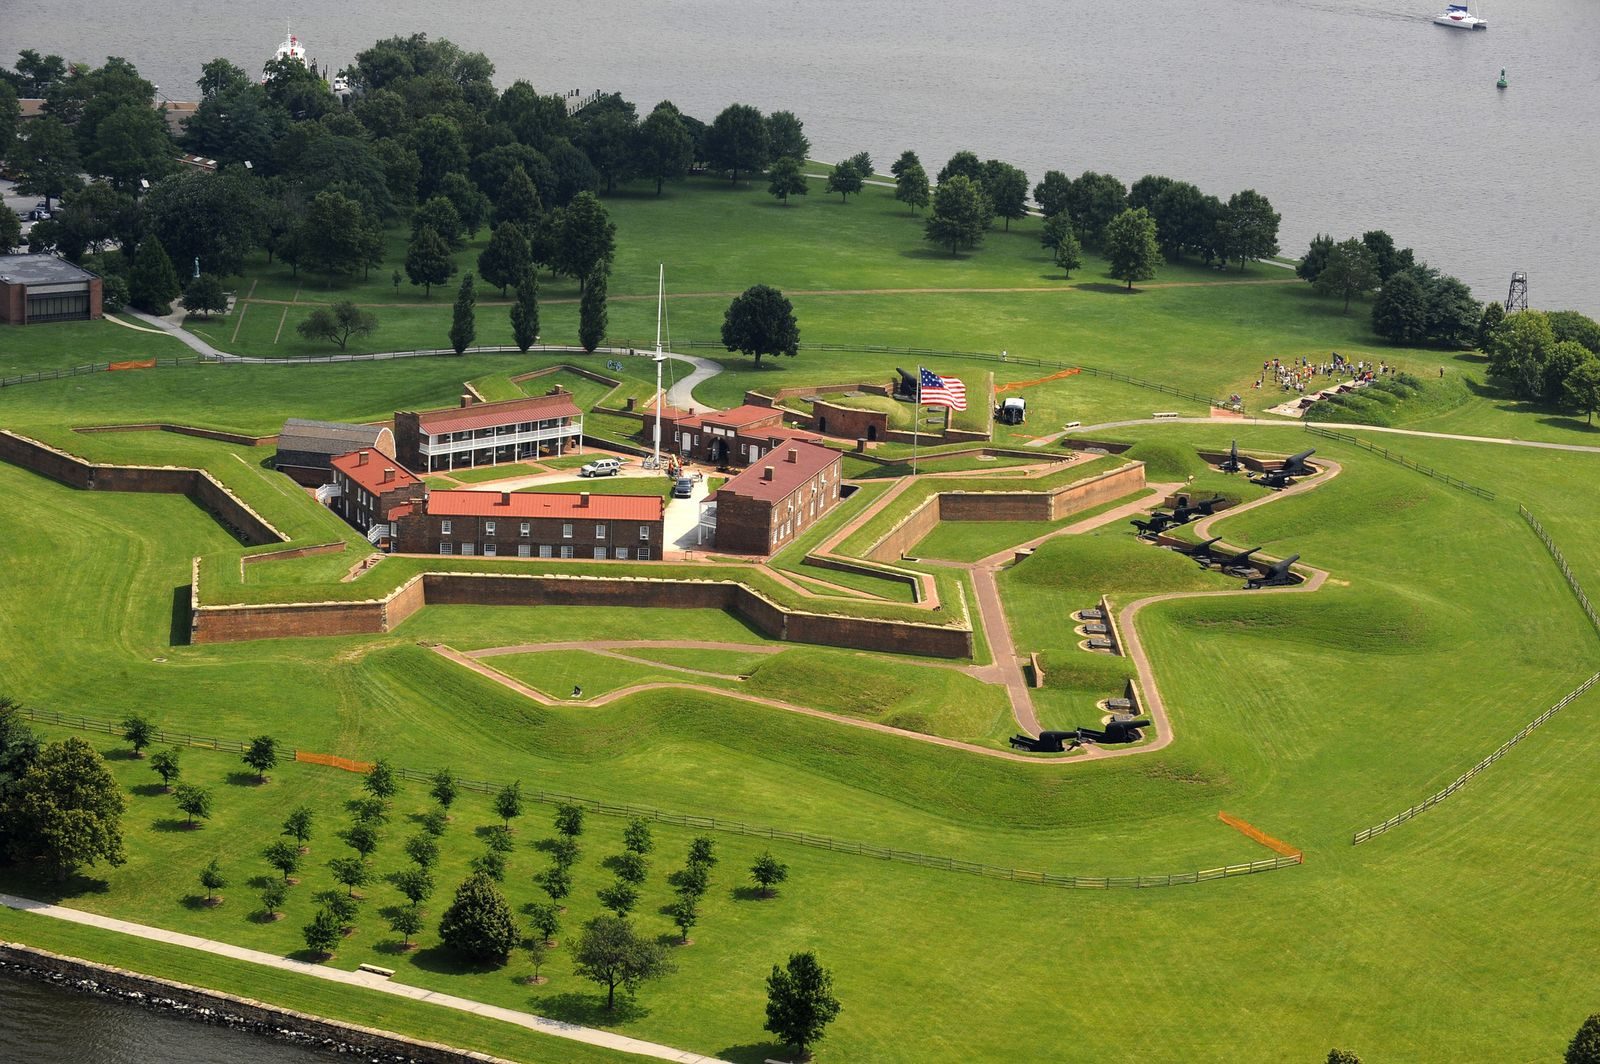 Fort McHenry from an aerial view